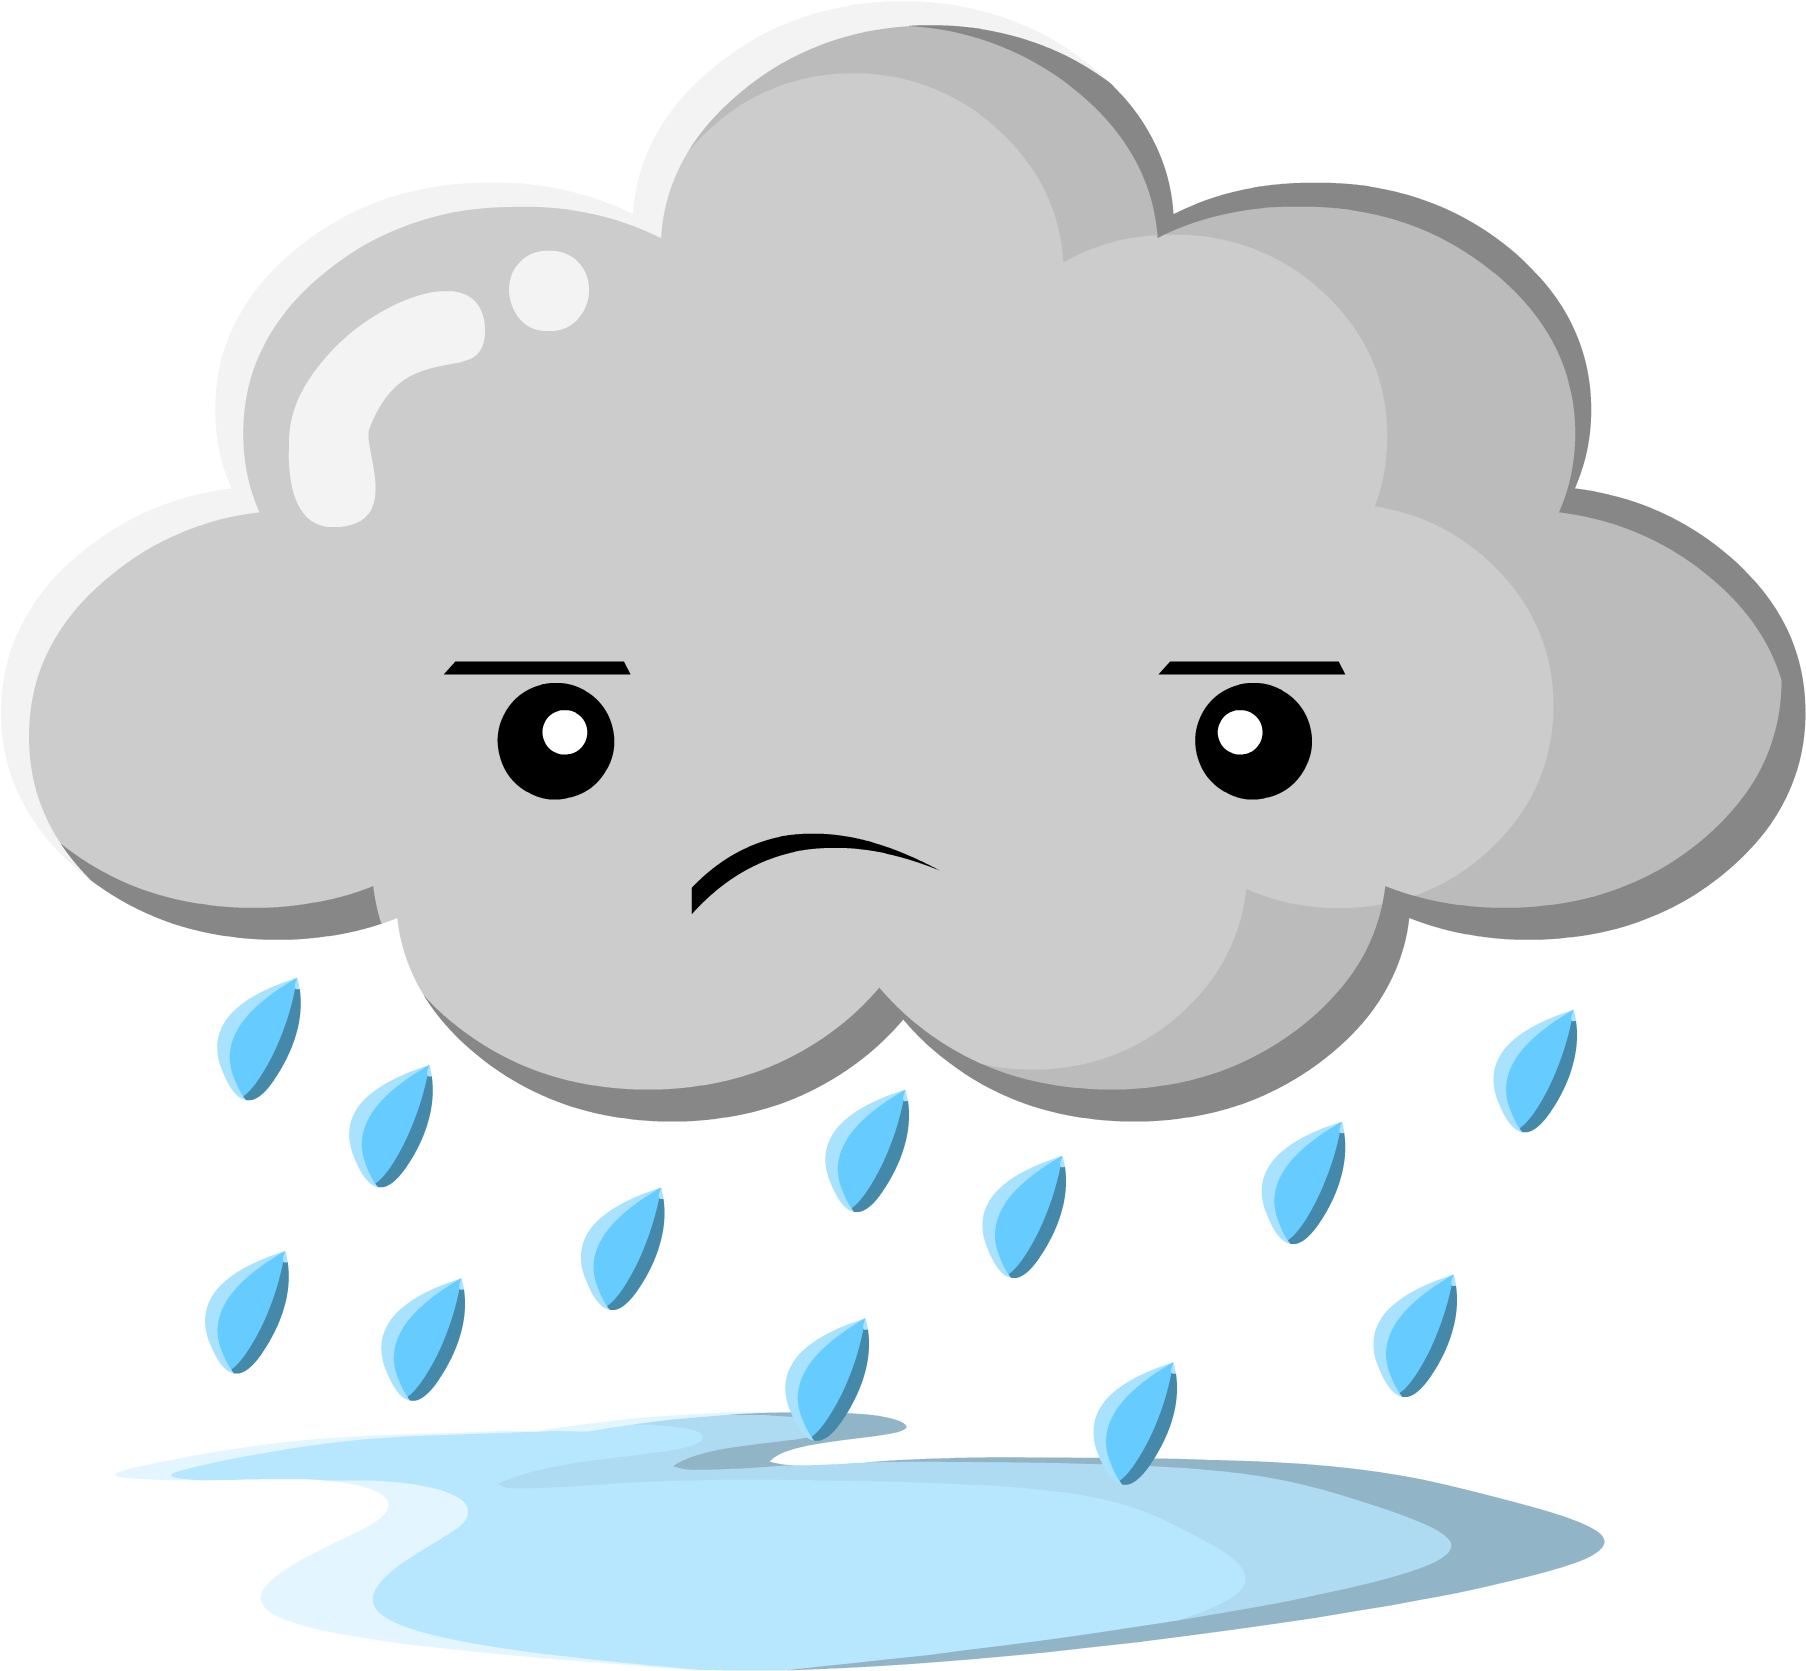 Dark Clouds Cartoon Clip Art